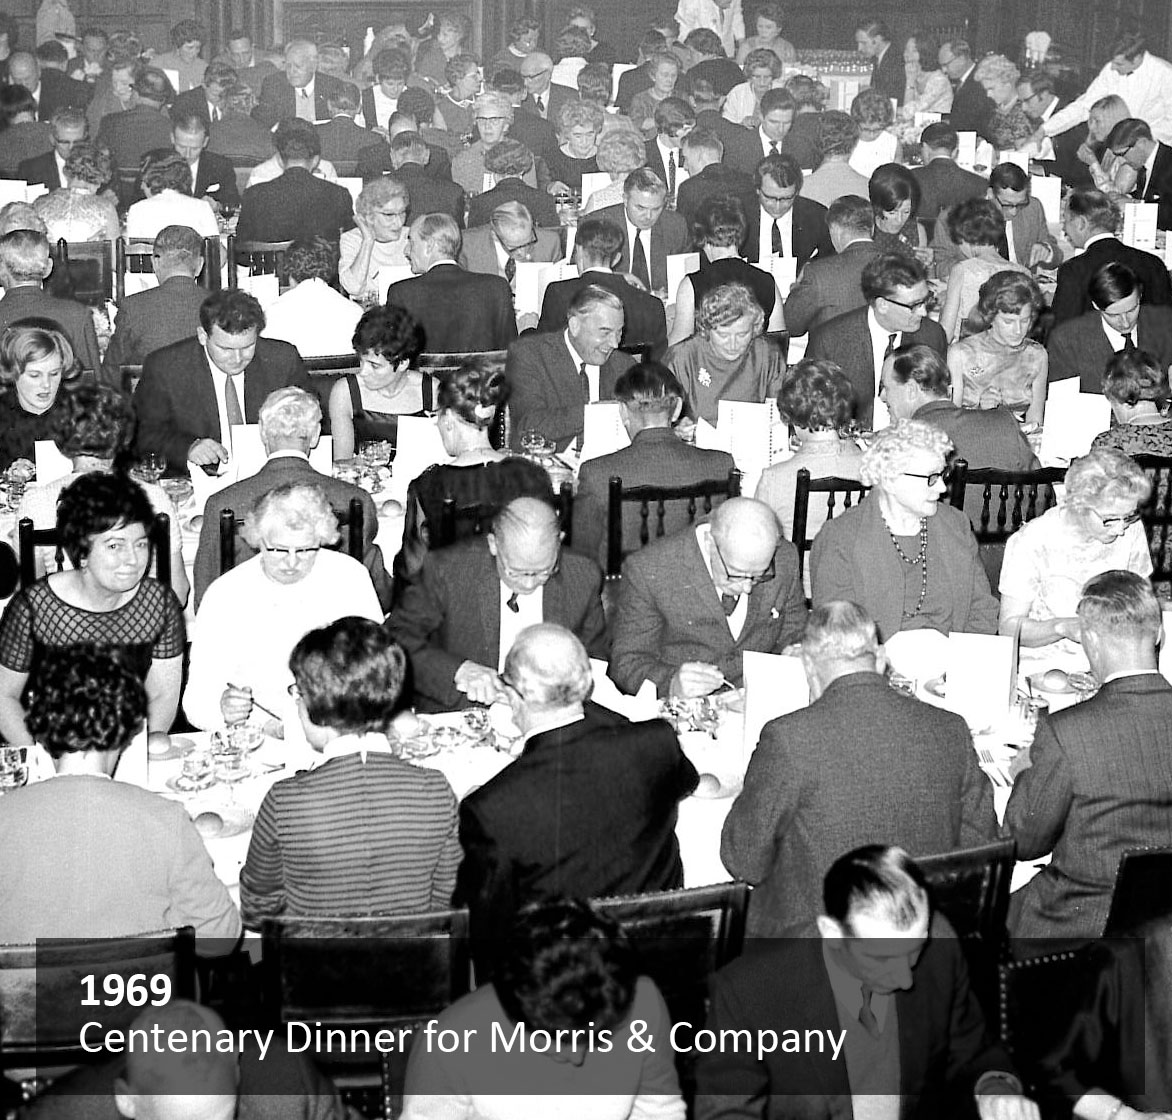 Centenary Dinner for Morris & Company